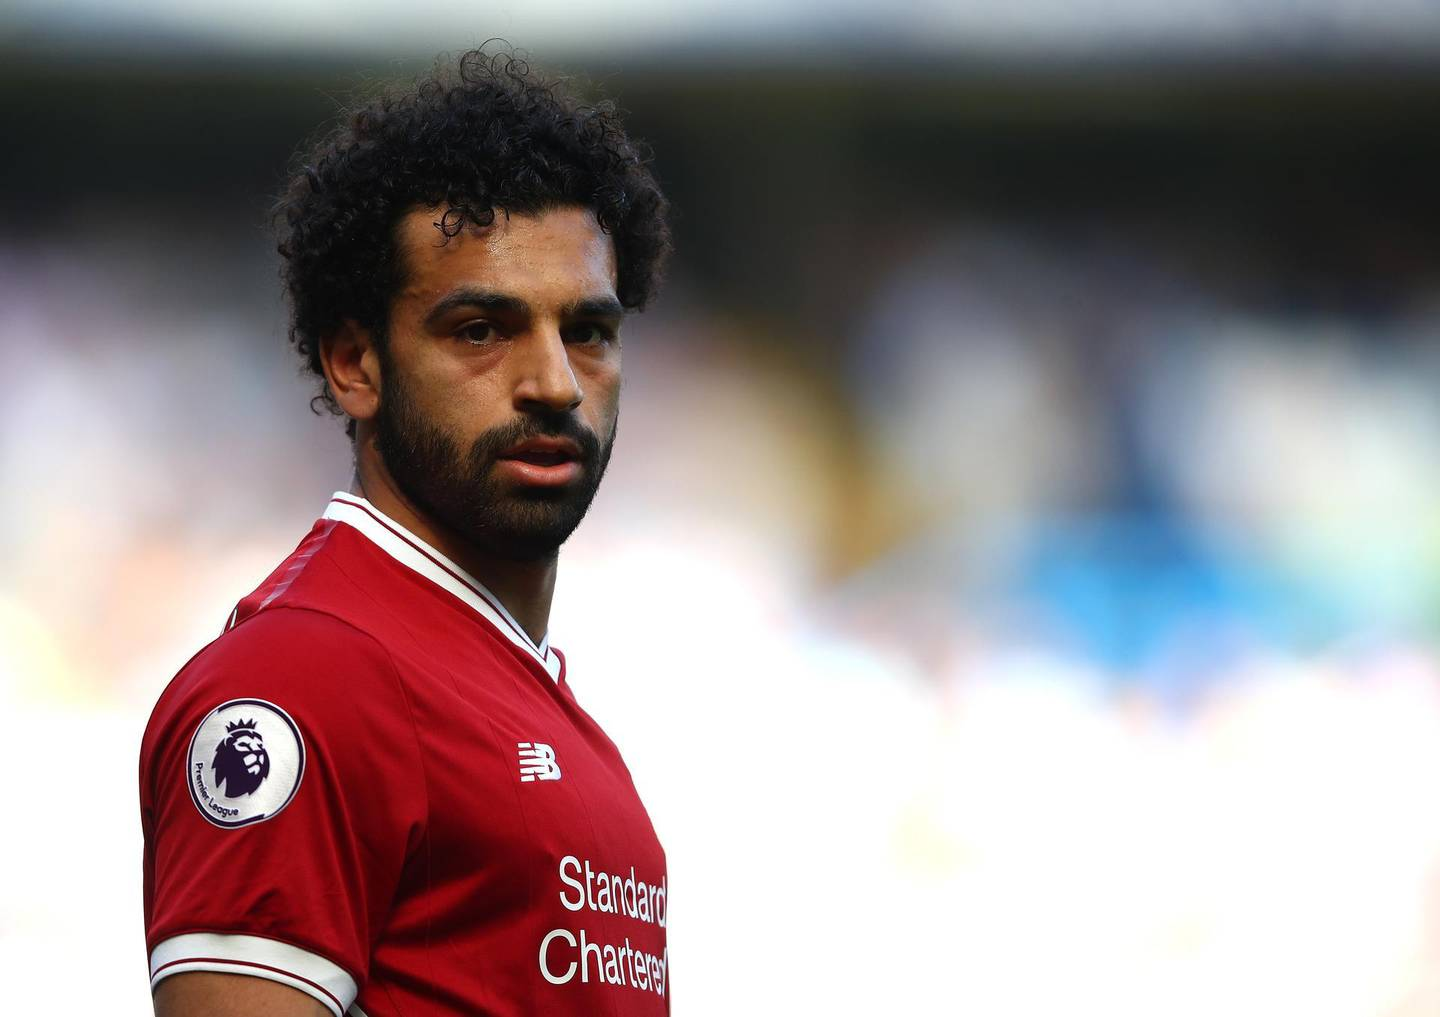 LONDON, ENGLAND - MAY 06:  Mohamed Salah of Liverpool looks on during the Premier League match between Chelsea and Liverpool at Stamford Bridge on May 6, 2018 in London, England.  (Photo by Julian Finney/Getty Images)